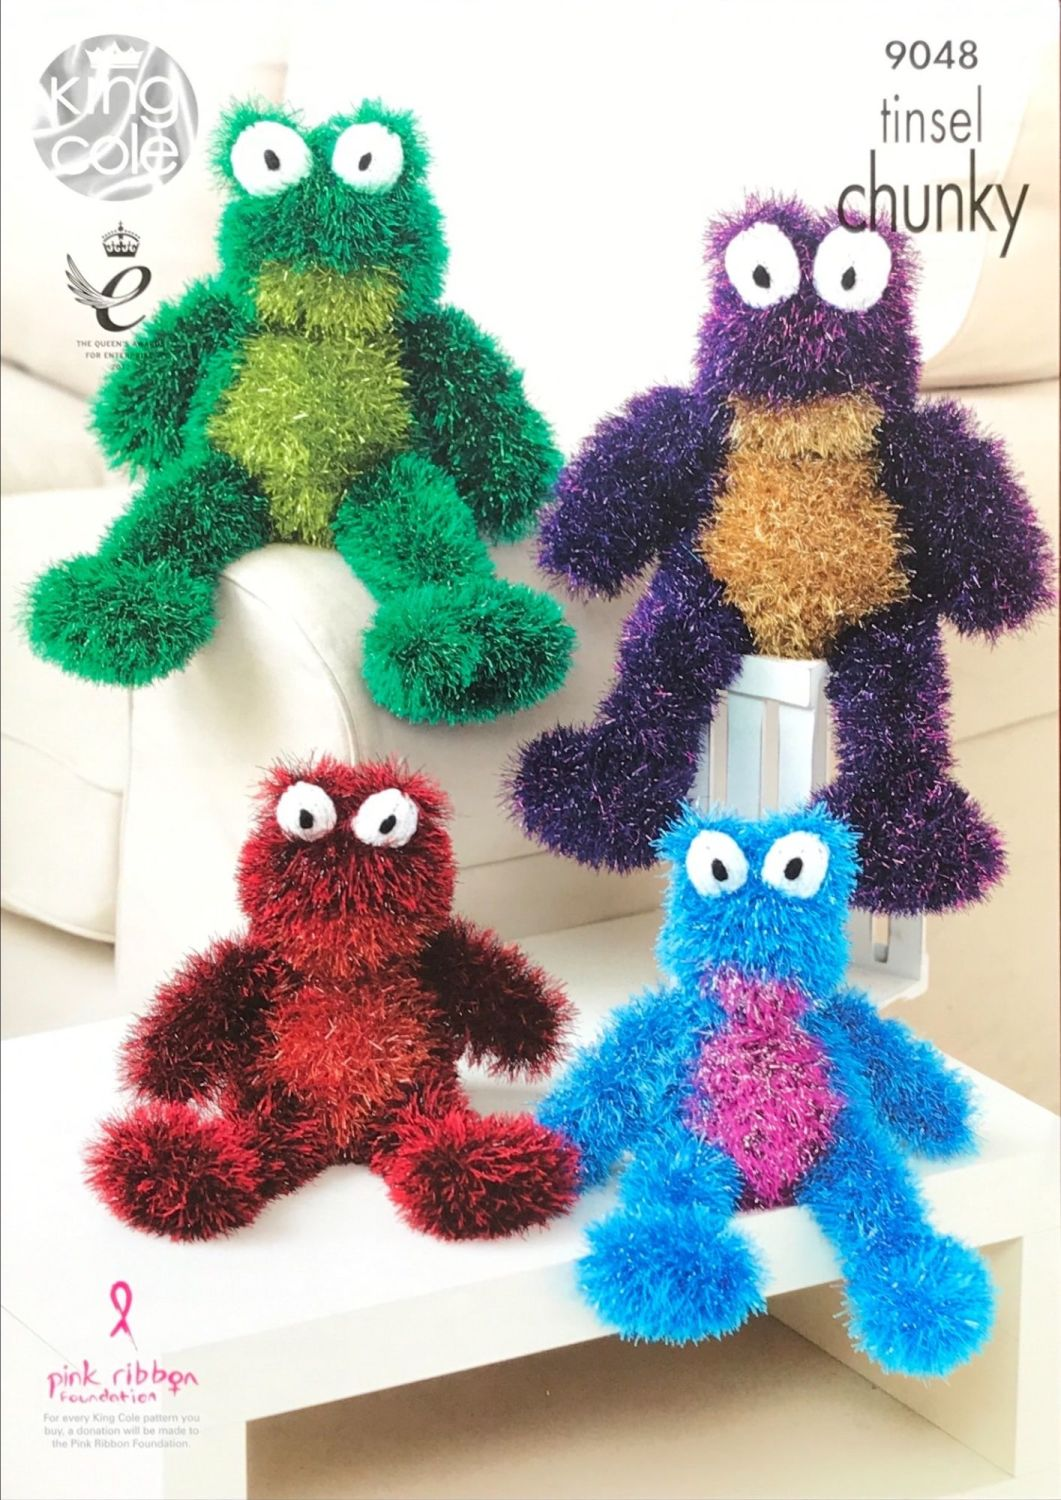 King Cole Pattern 9048 Tinsel Frogs